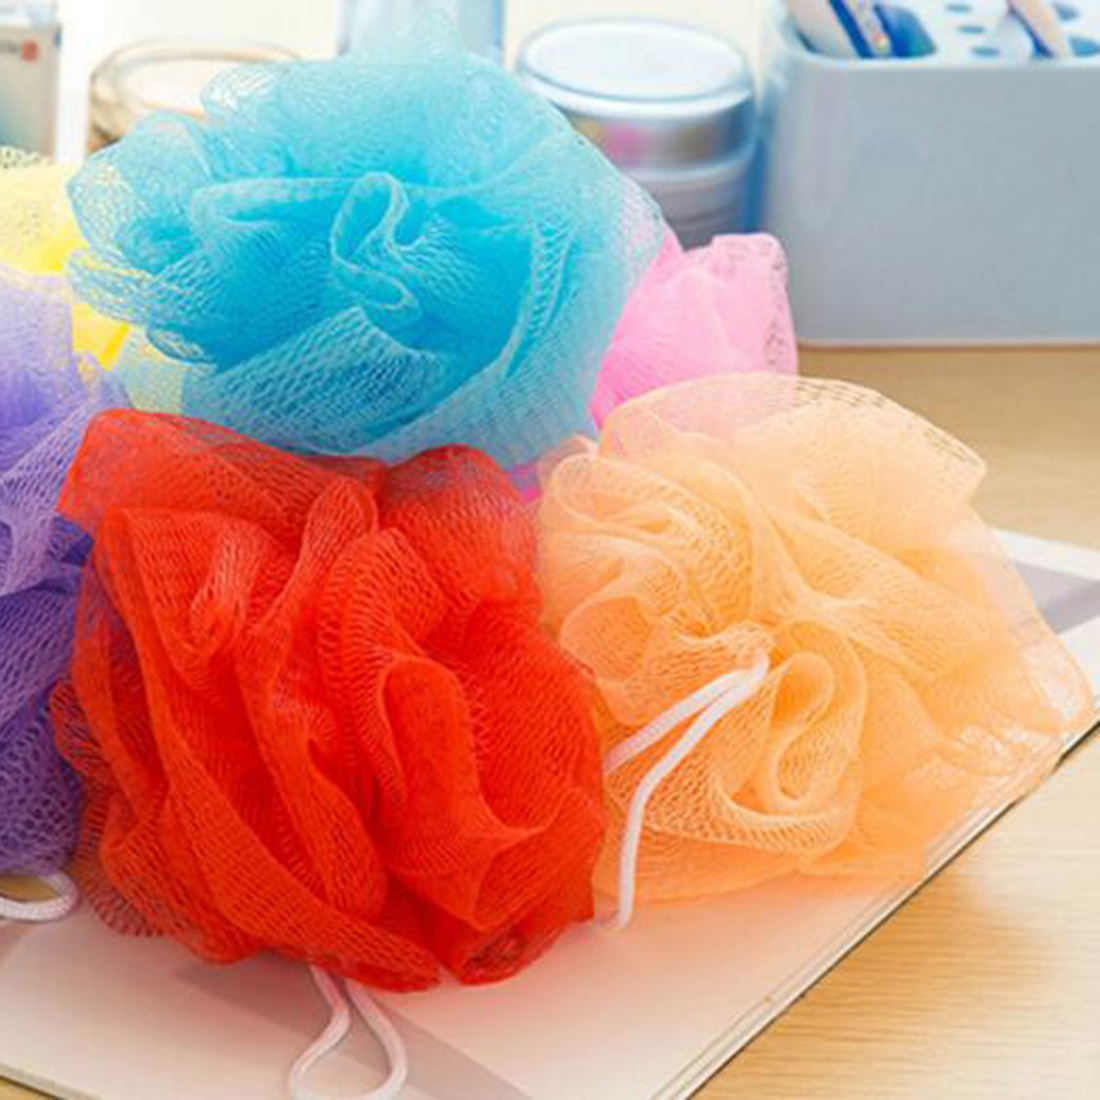 2016 Hot Selling Bubble Loofah Flower Bath Ball Lot Bath Flower Sponge Bath Rub High Quality Bath Toiletries